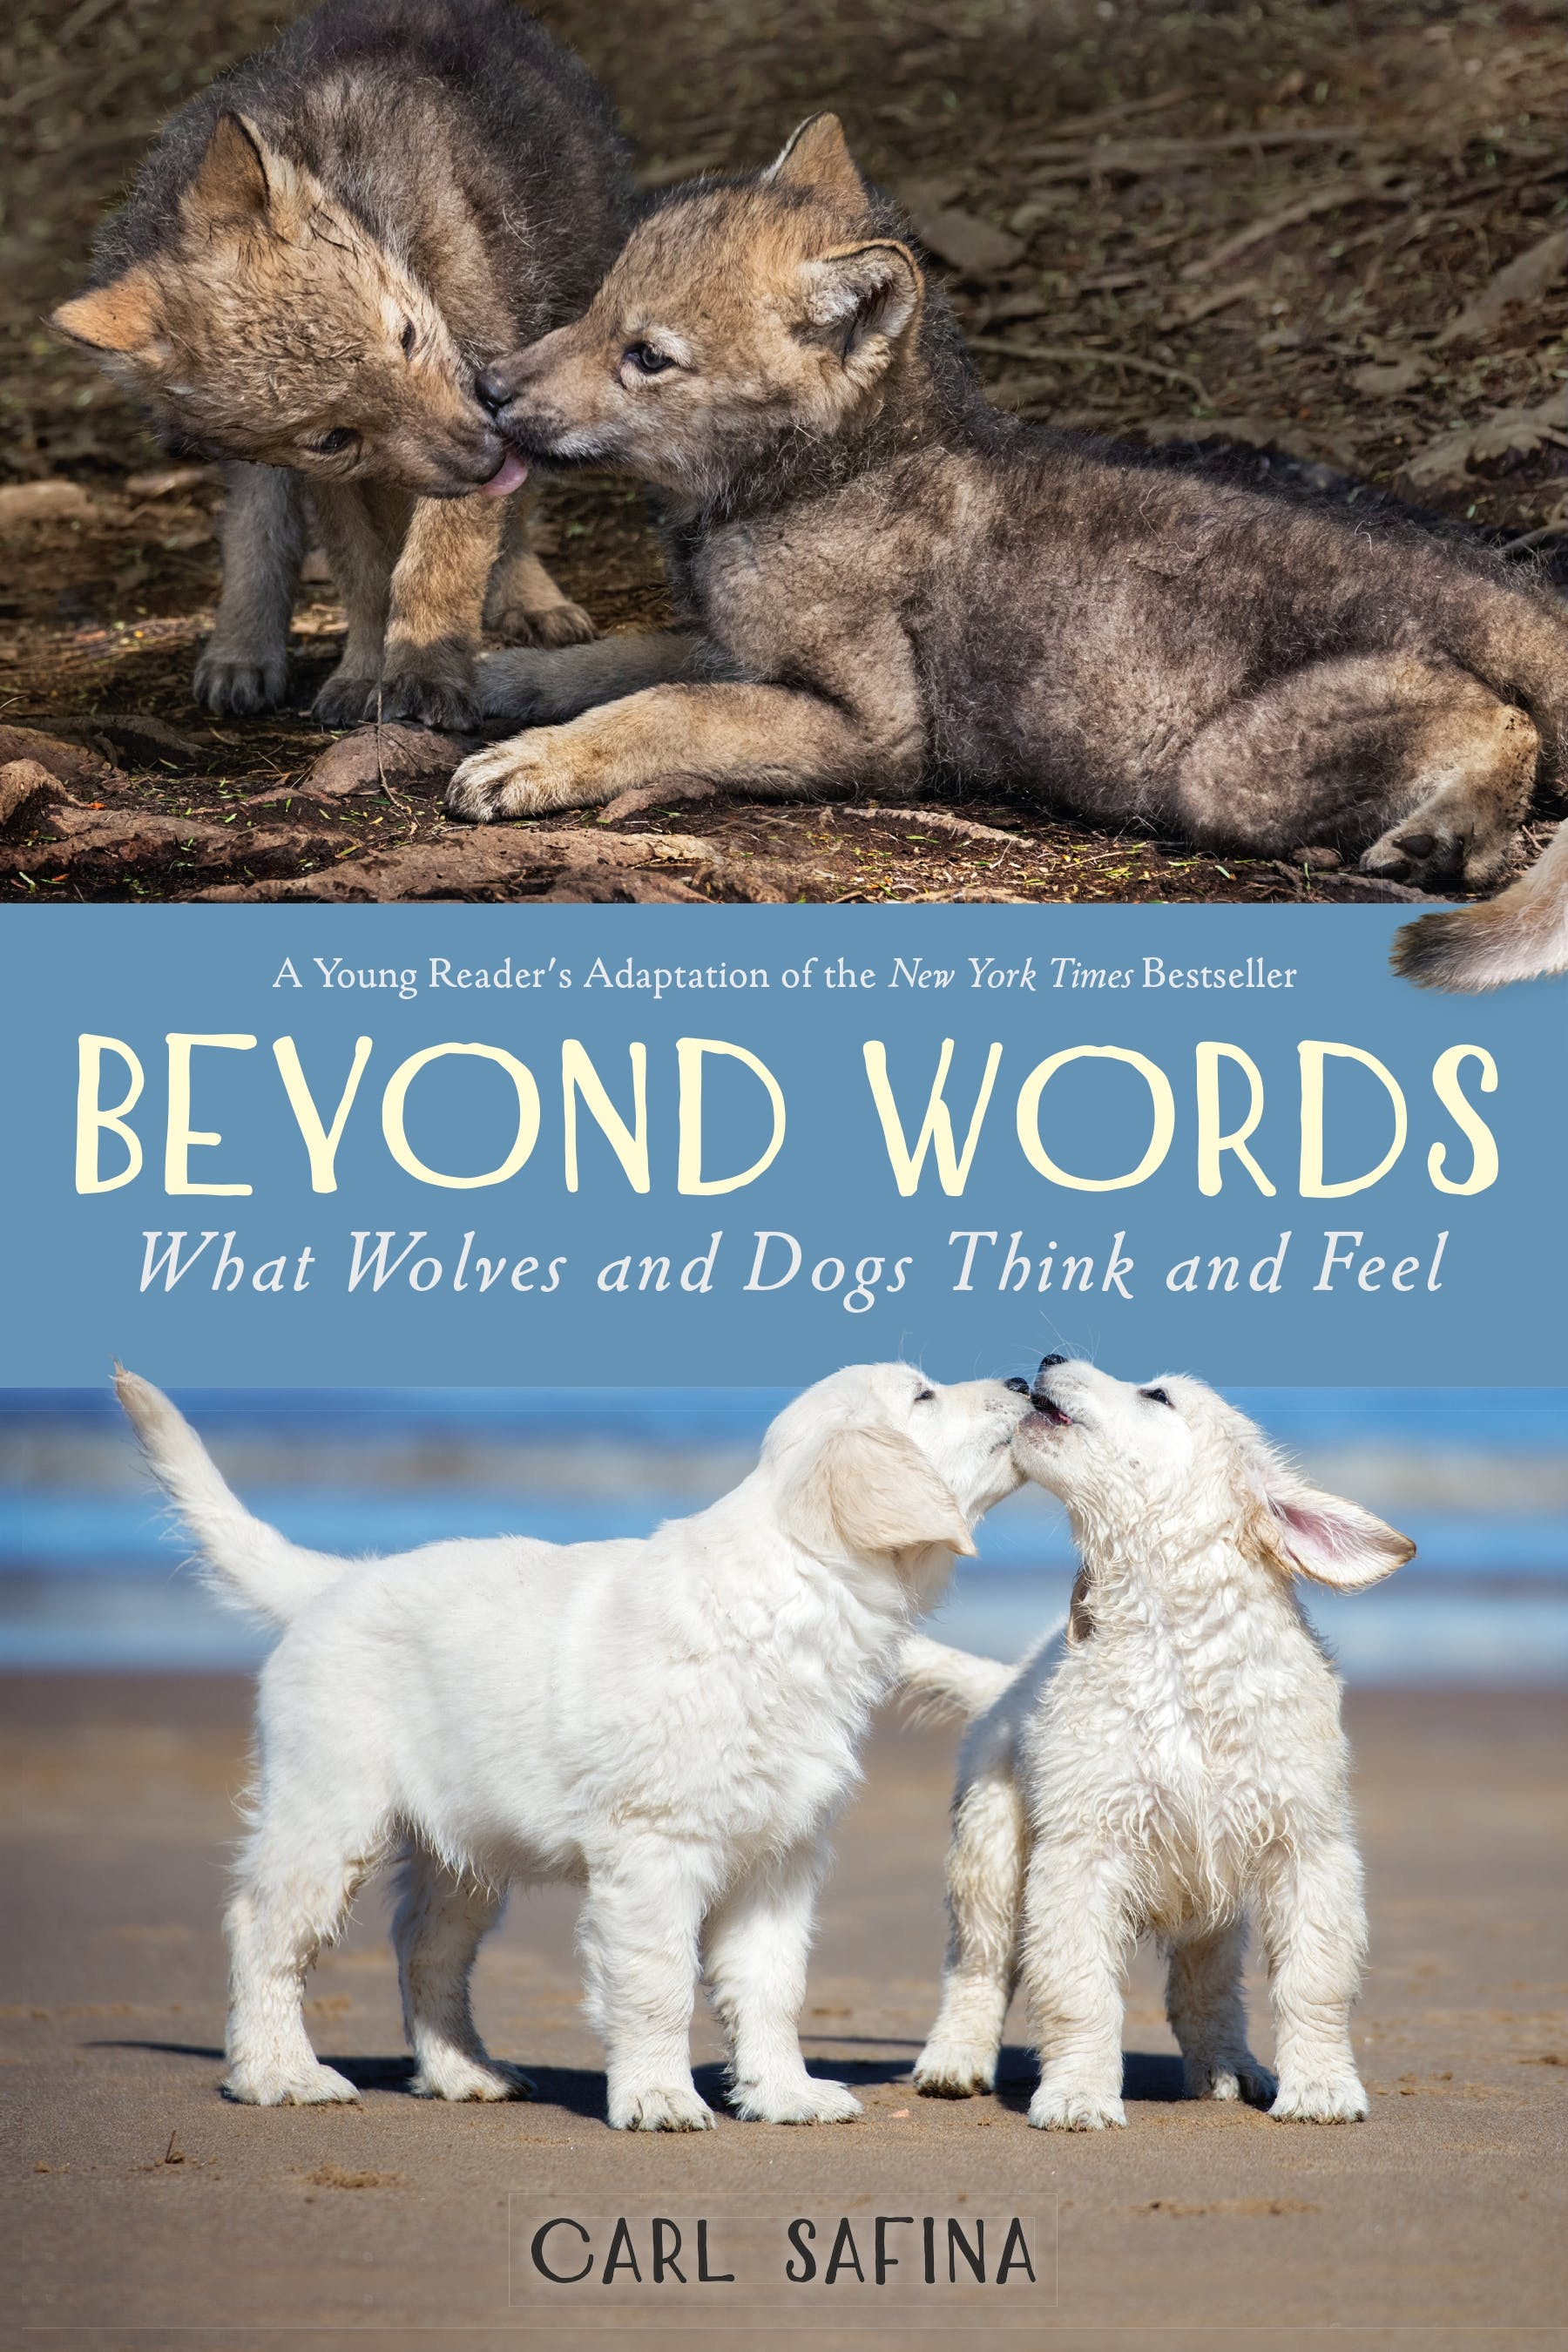 Image of Beyond Words: What Wolves and Dogs Think and Feel (A Young Reader's Adaptation)